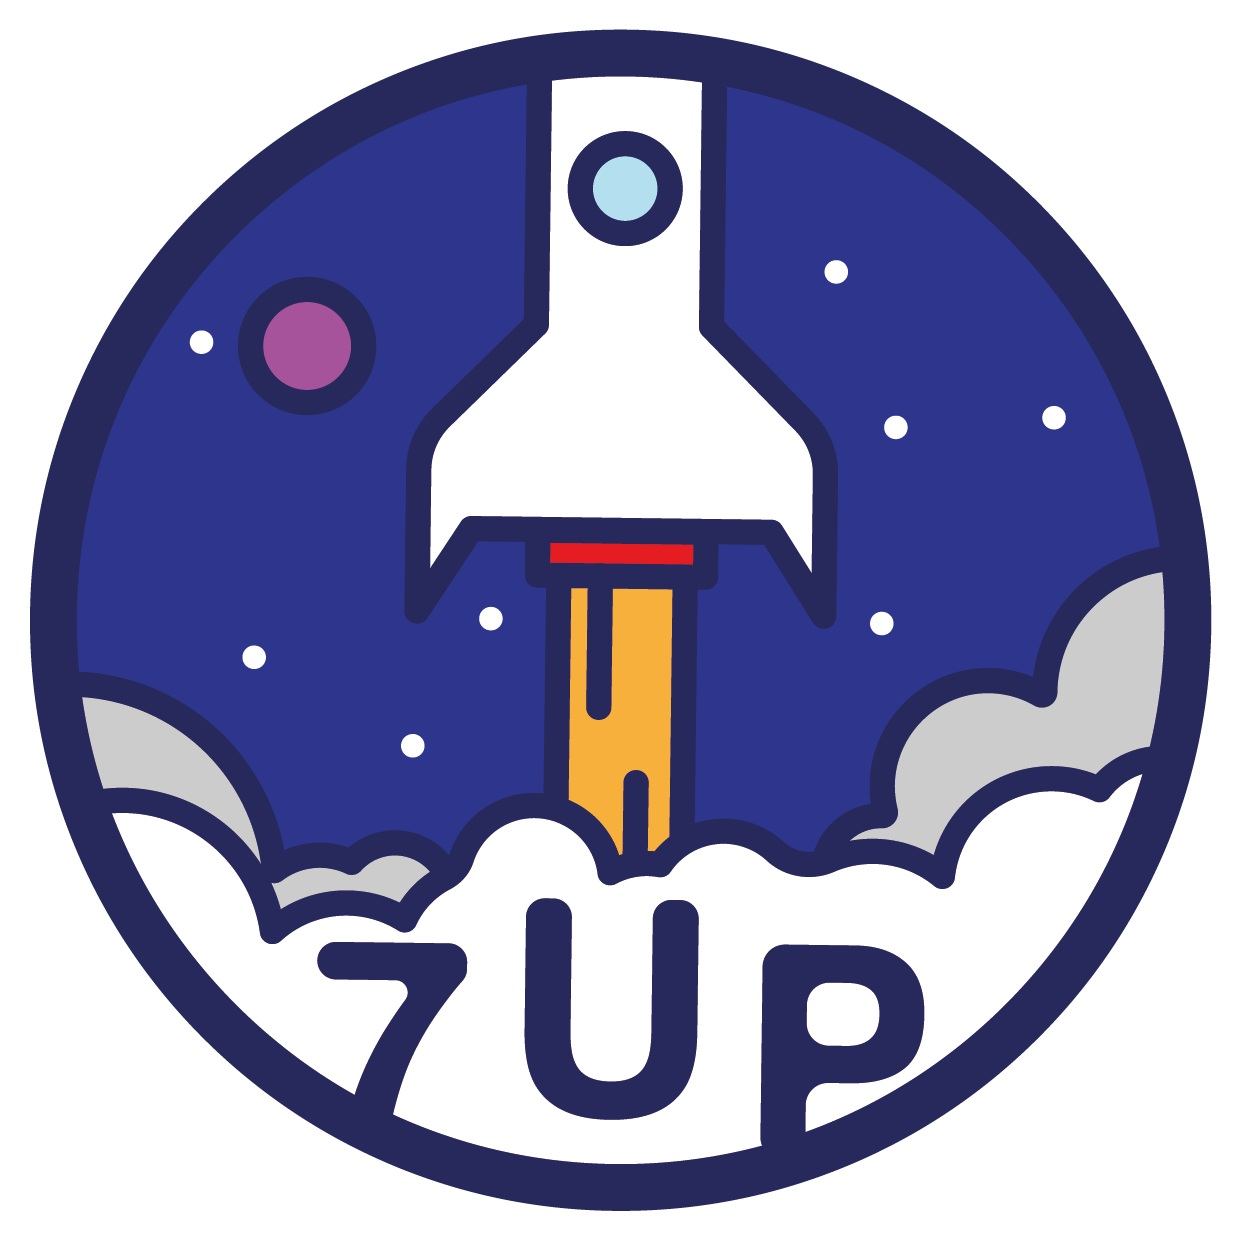 7 Up - Top of the Children's mountain! A group for our Yr3 to 5's to belong to. Thursdays are rammed full of craft, games, tuck shopping, parties and overflowing with all your favourite (and often innately annoying!) tunes. 7Up is also on every Amazing Sunday as part of Children's Church. Join us in our travels alongside the Bible's Jesus adventurers.LIFE.CENTRE Thurs. 6.00pm & CHINE, LIFE.CENTRE Sun. 11.00am